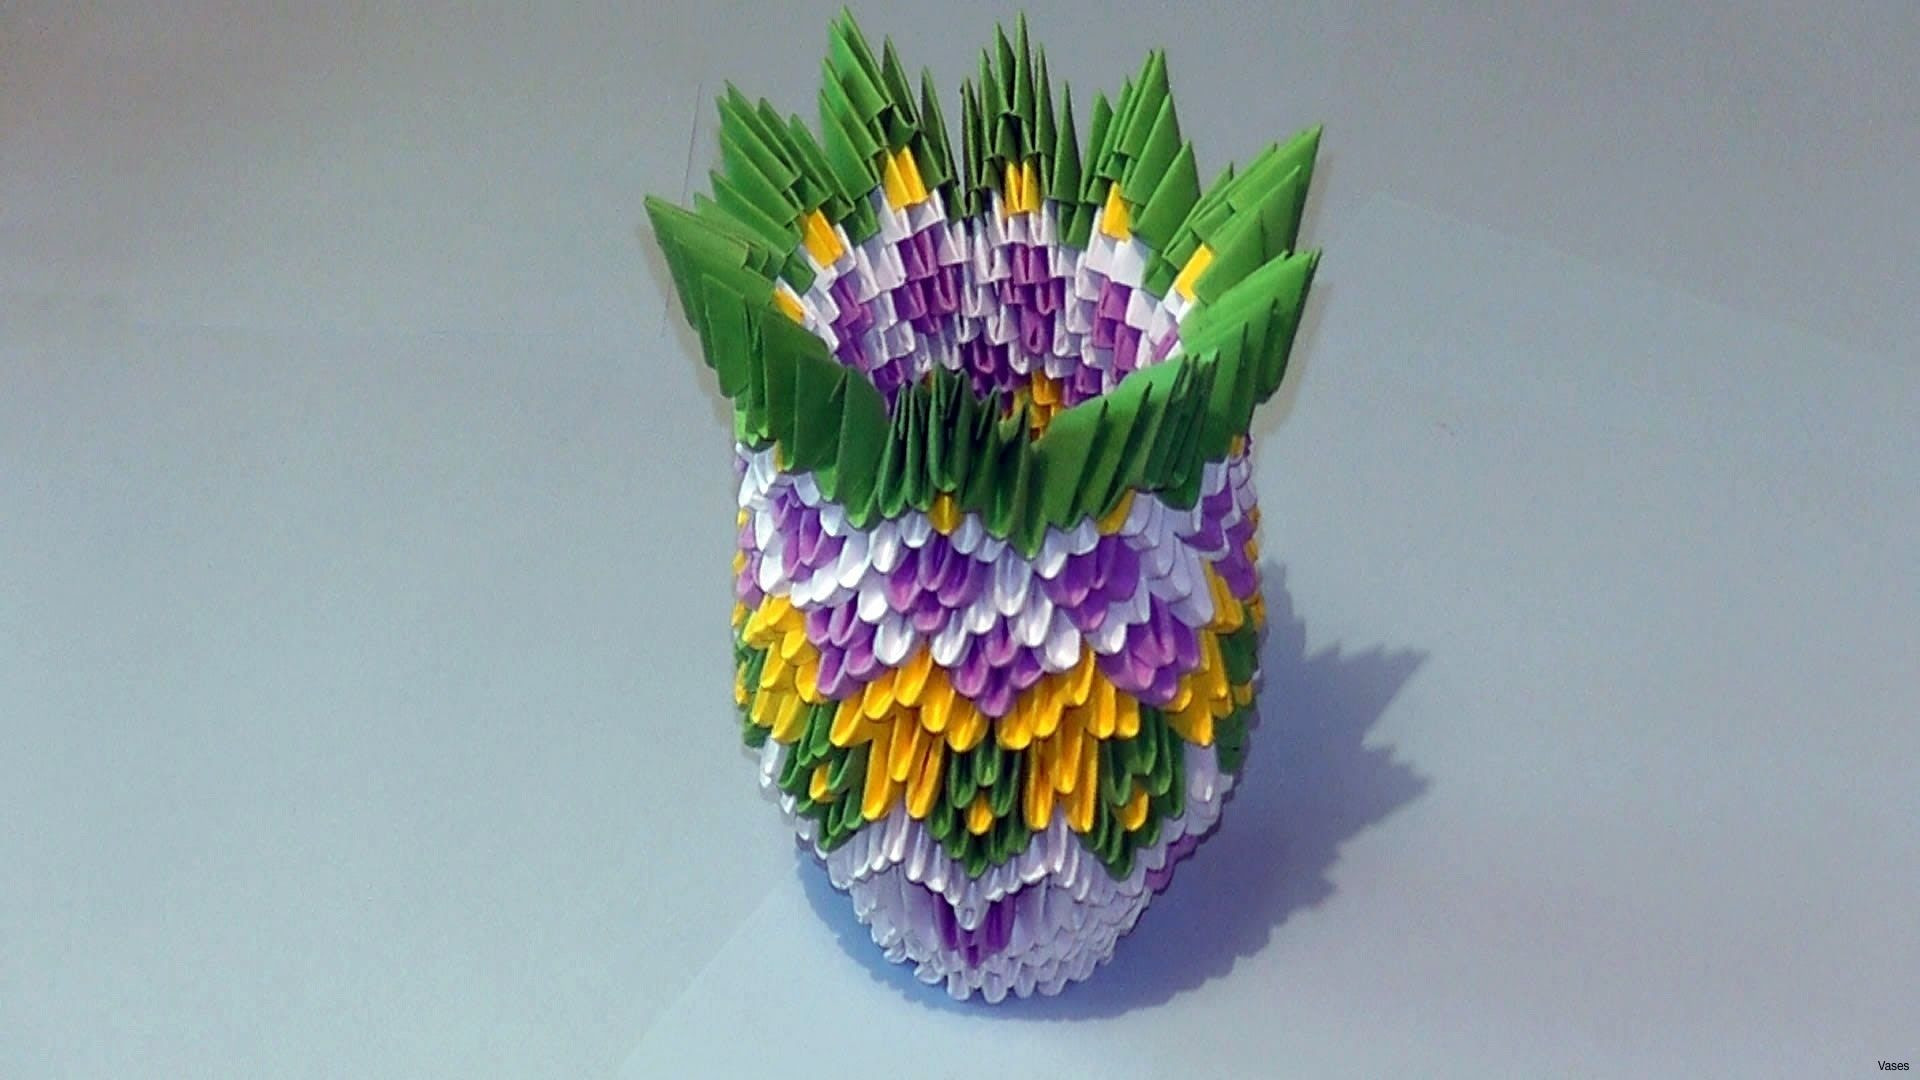 25 Spectacular Large Sunflower Vase 2021 free download large sunflower vase of 25 blue flower vase the weekly world within origami flower vase folding instructions awesome folded book art